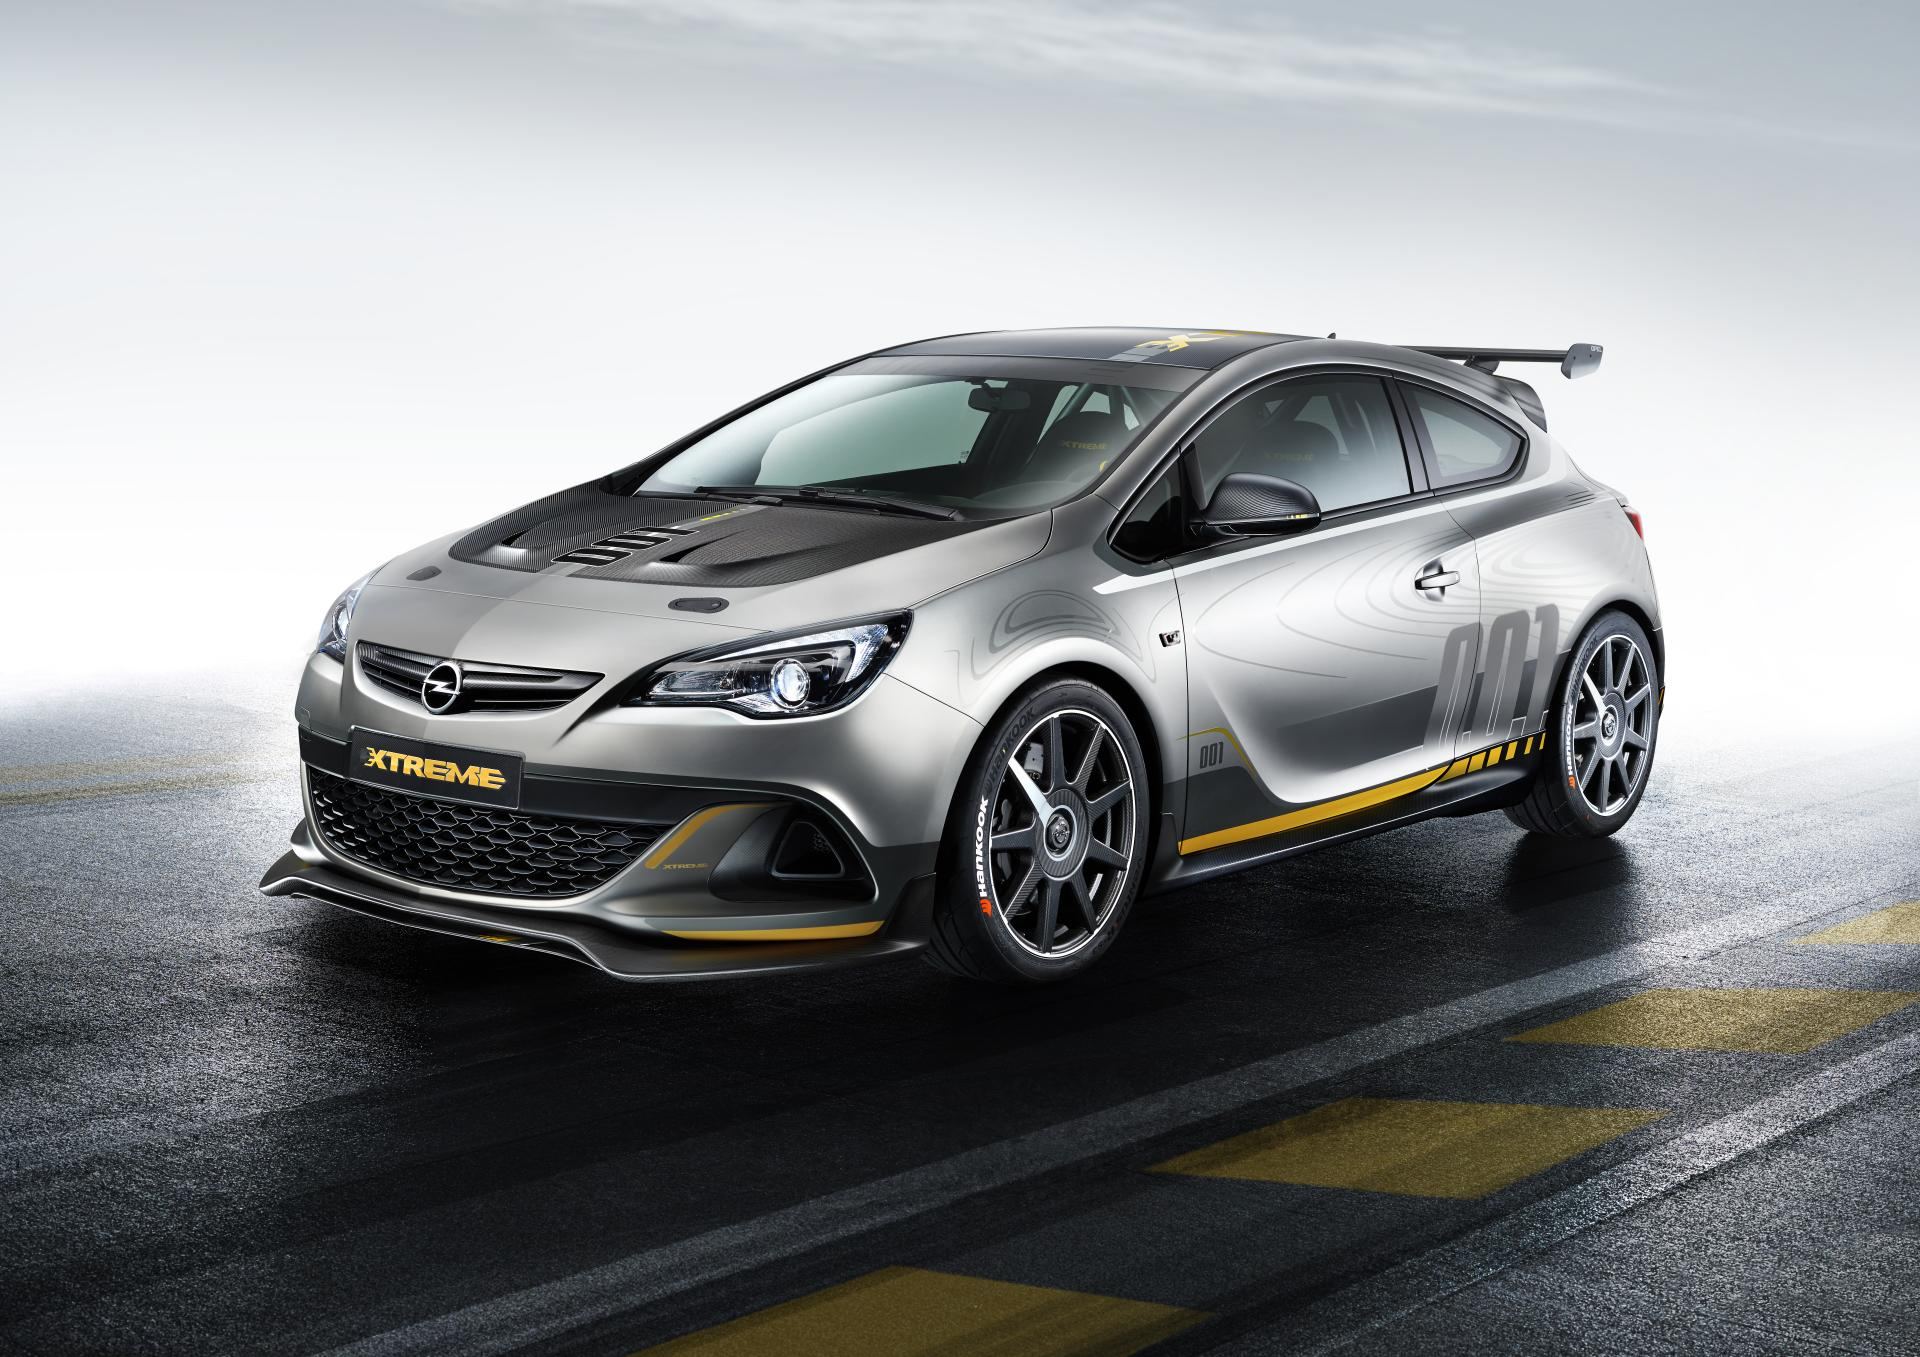 2014 Opel Astra OPC EXTREME News and Information, Research ...